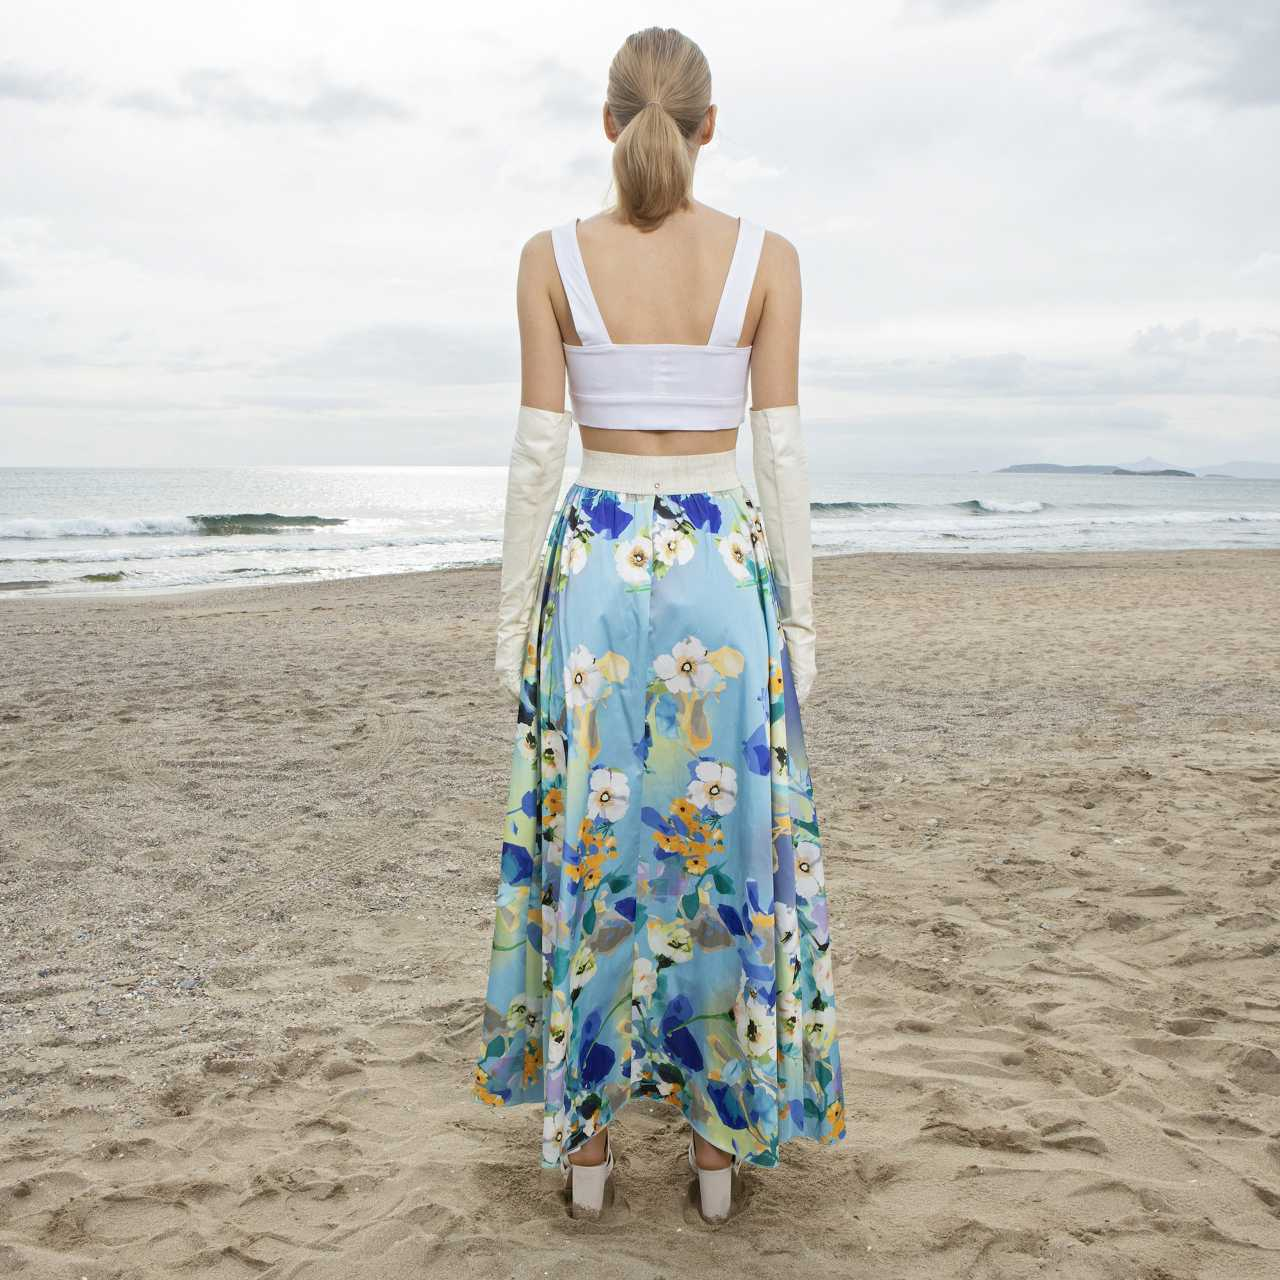 Product preview: Tulle Tutu Skirt Maxi Patterned Shades of Blue Skirt